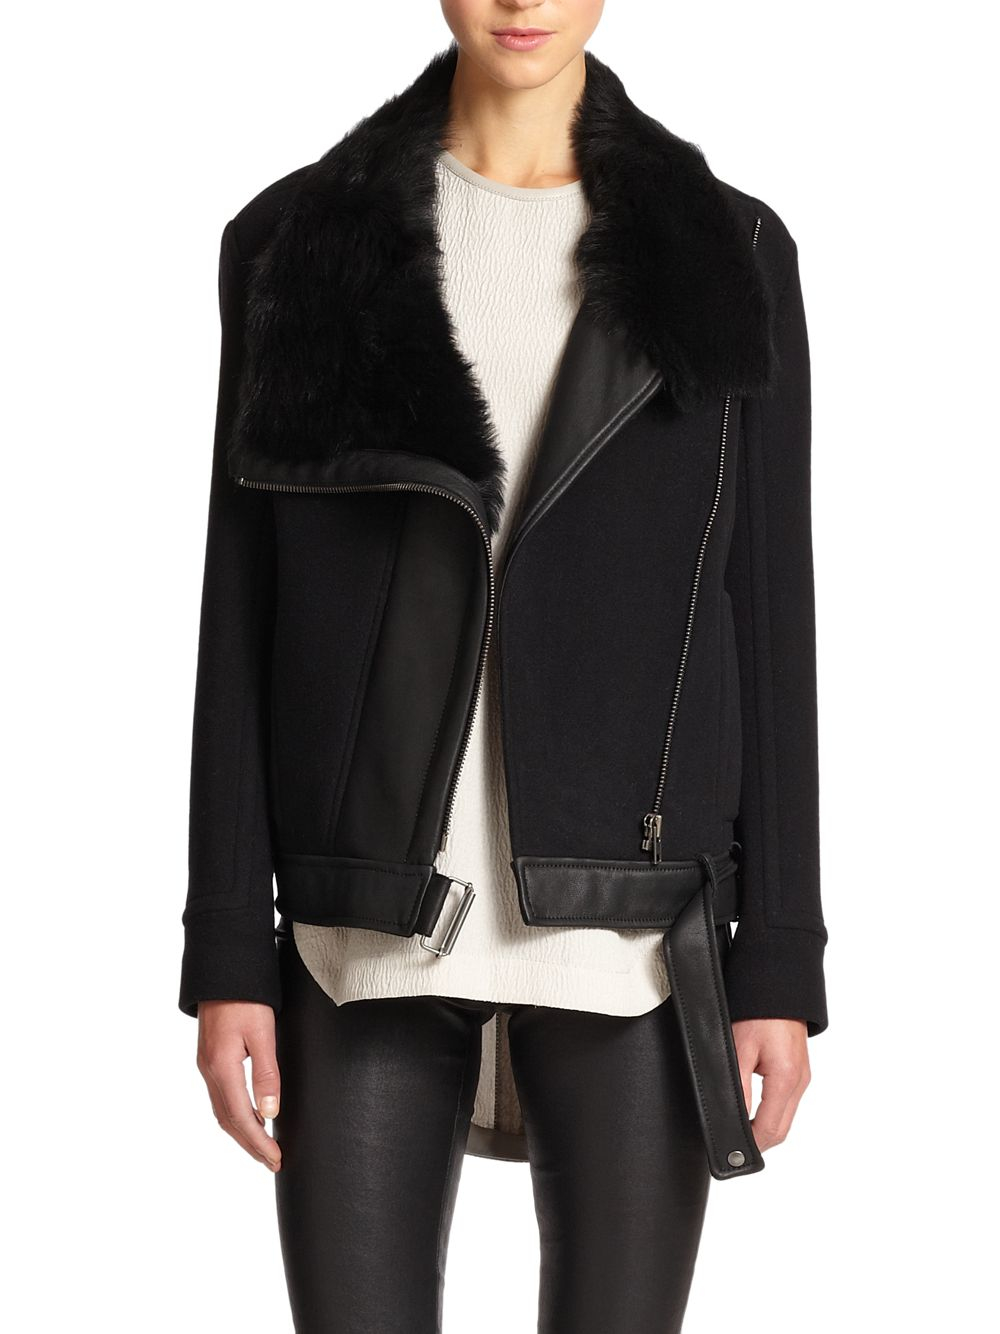 Helmut lang Inclusion Leather & Shearling Jacket in Black | Lyst